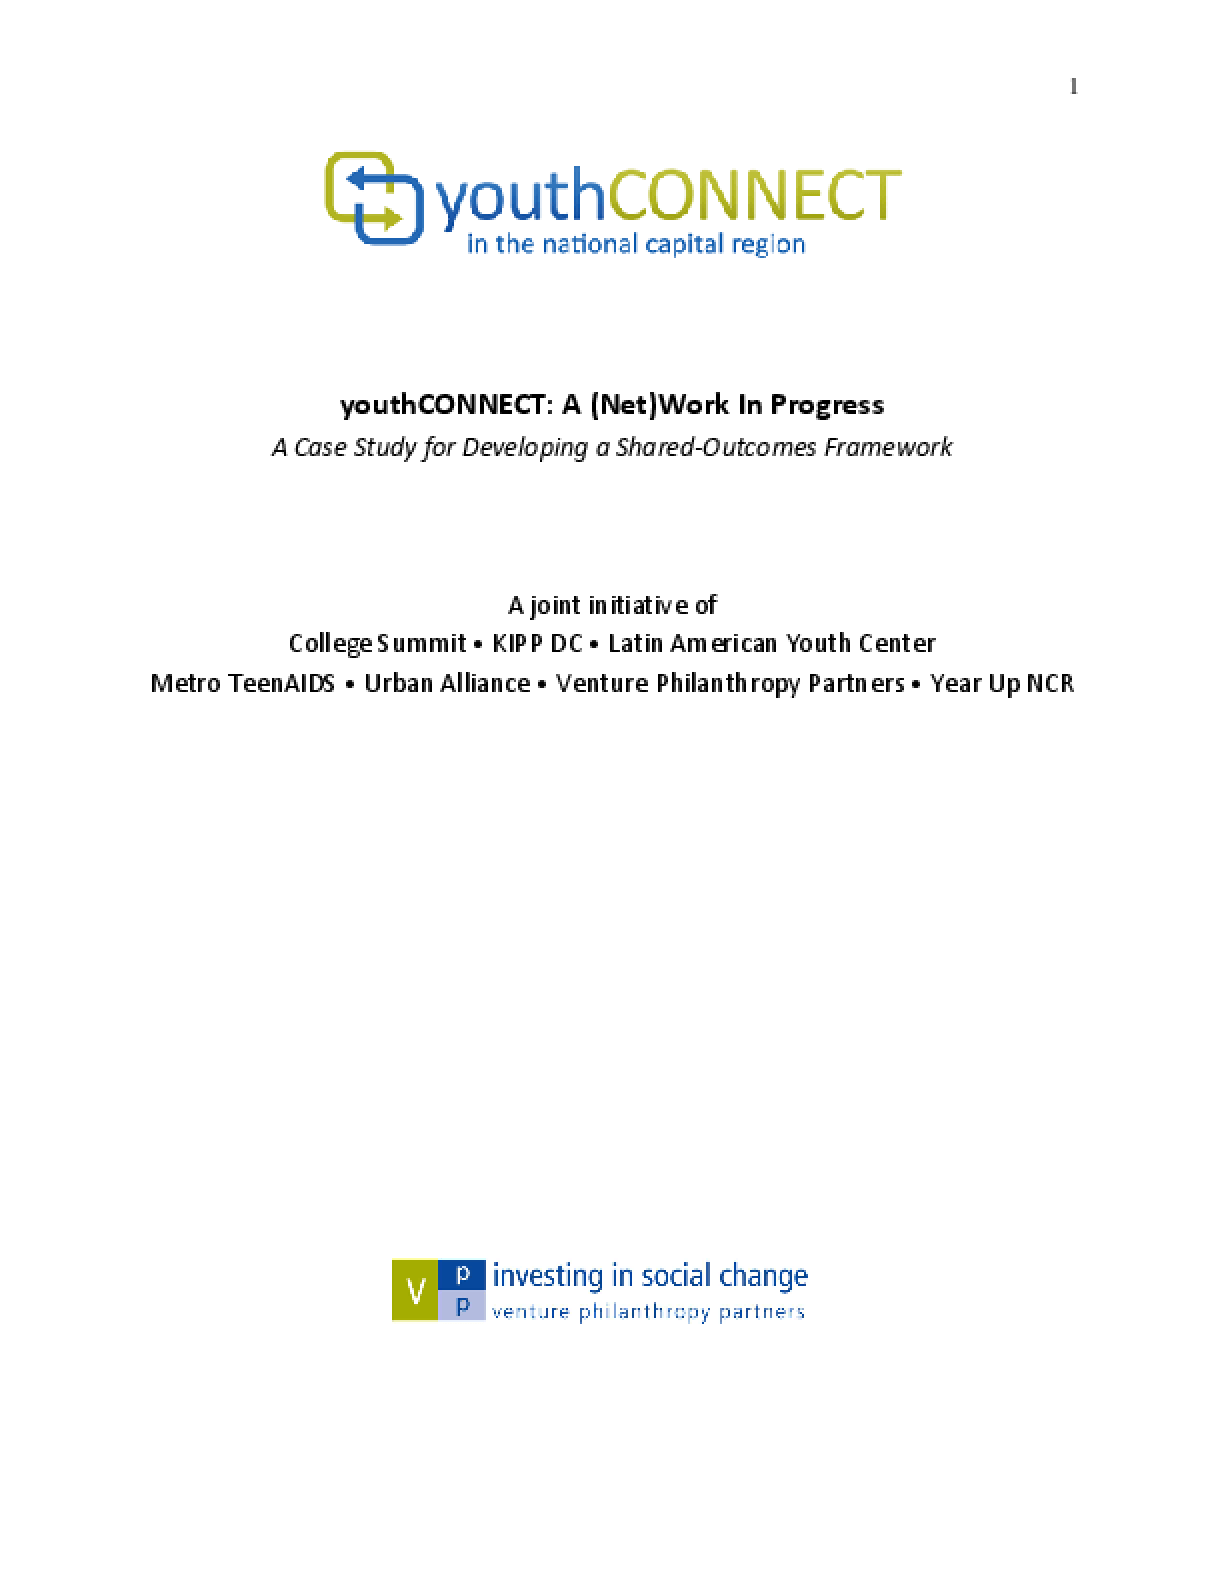 youthCONNECT: A (Net)Work In Progress - a Case Study for Developing a Shared-Outcomes Framework